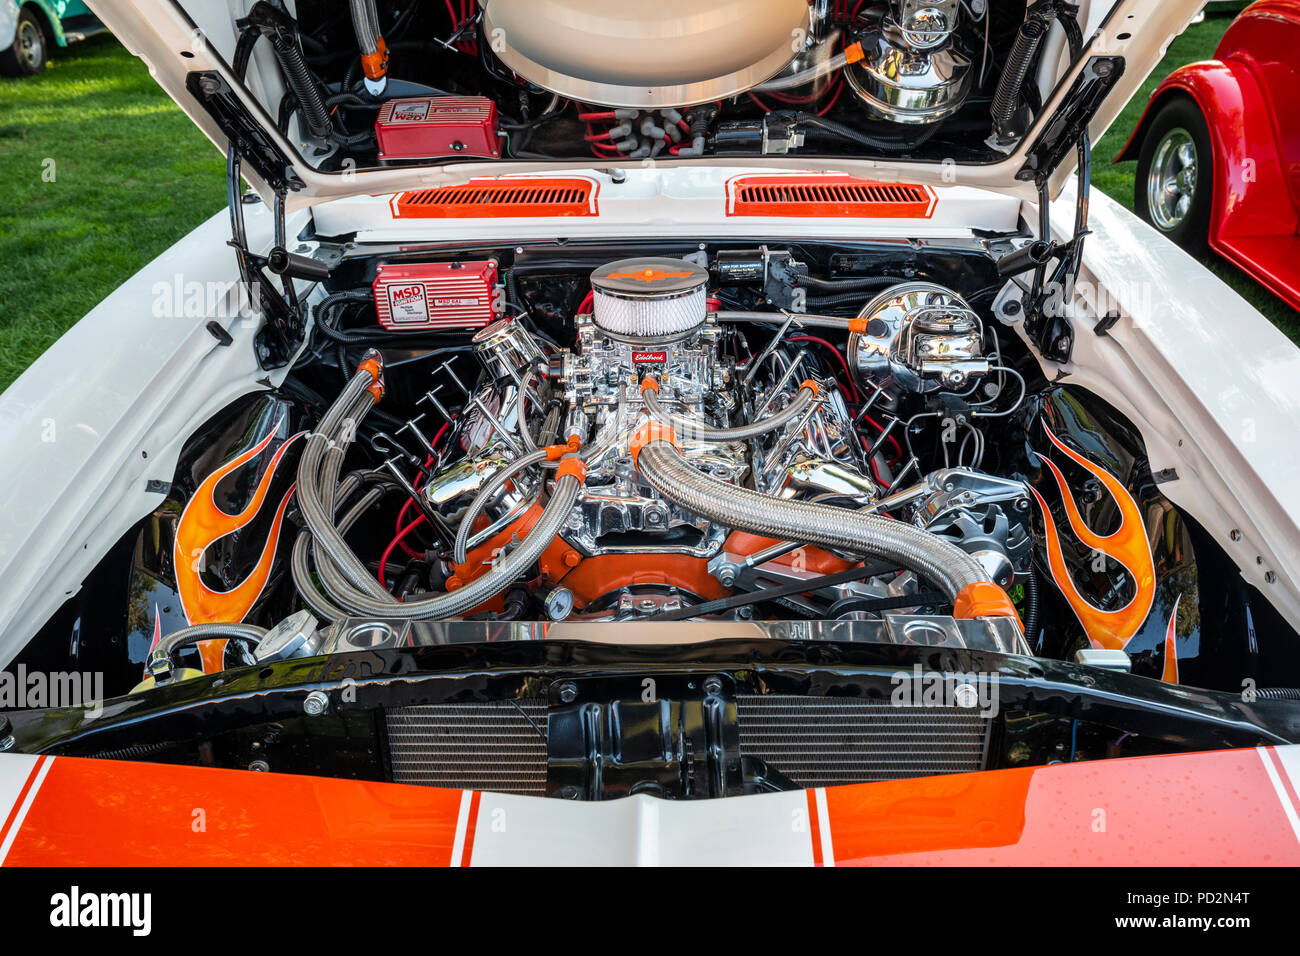 Chevrolet Camaro Engine High Resolution Stock Photography And Images Alamy